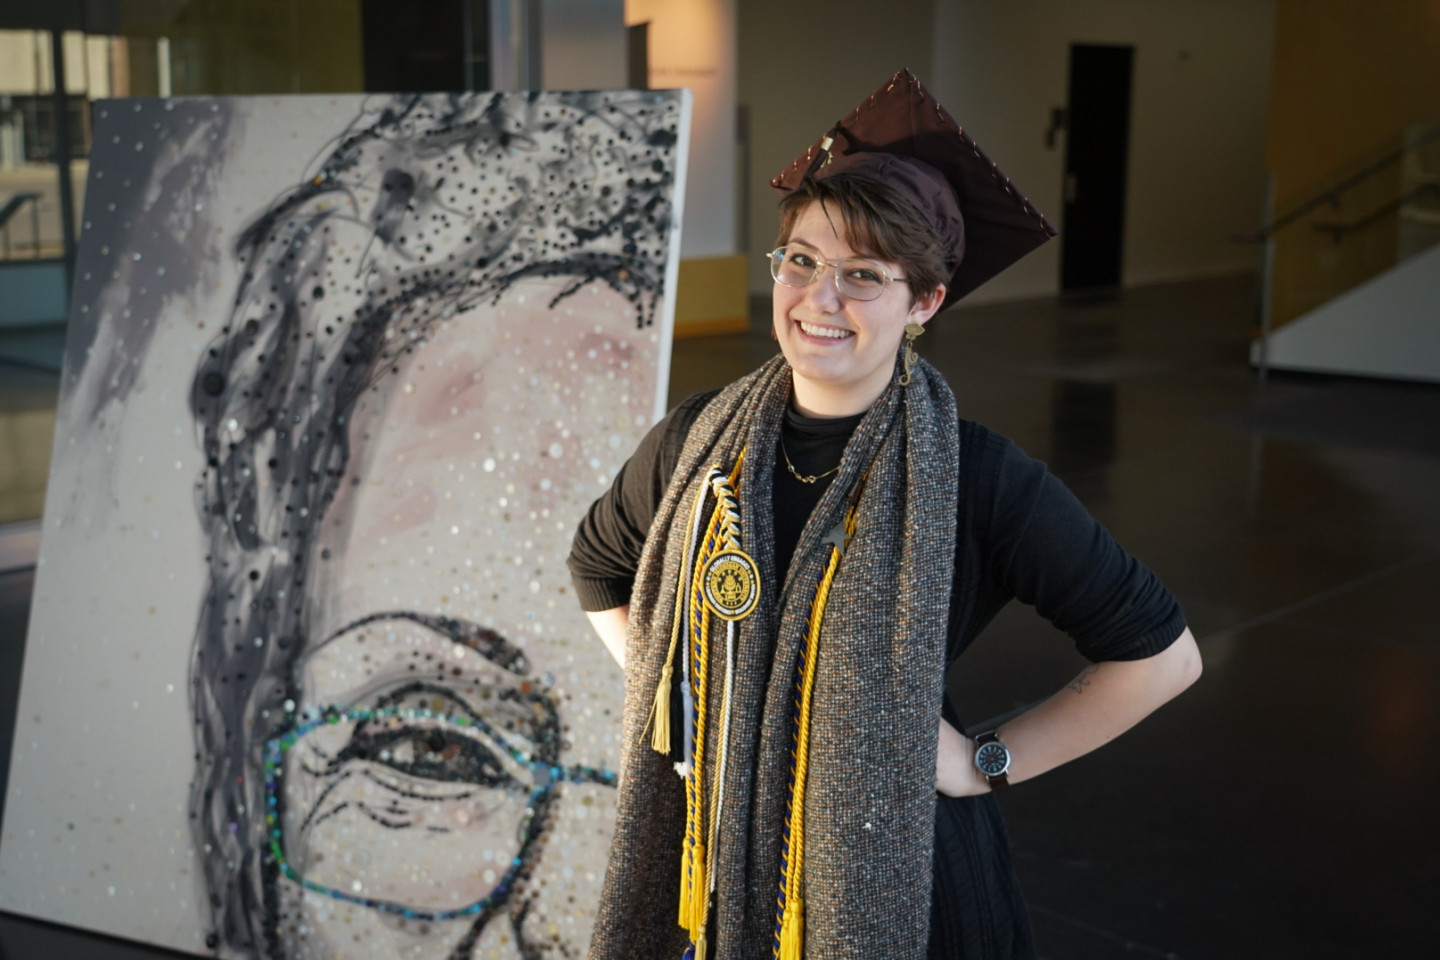 Rozlin Opolka stands in front of a painting she created of her grandmother.